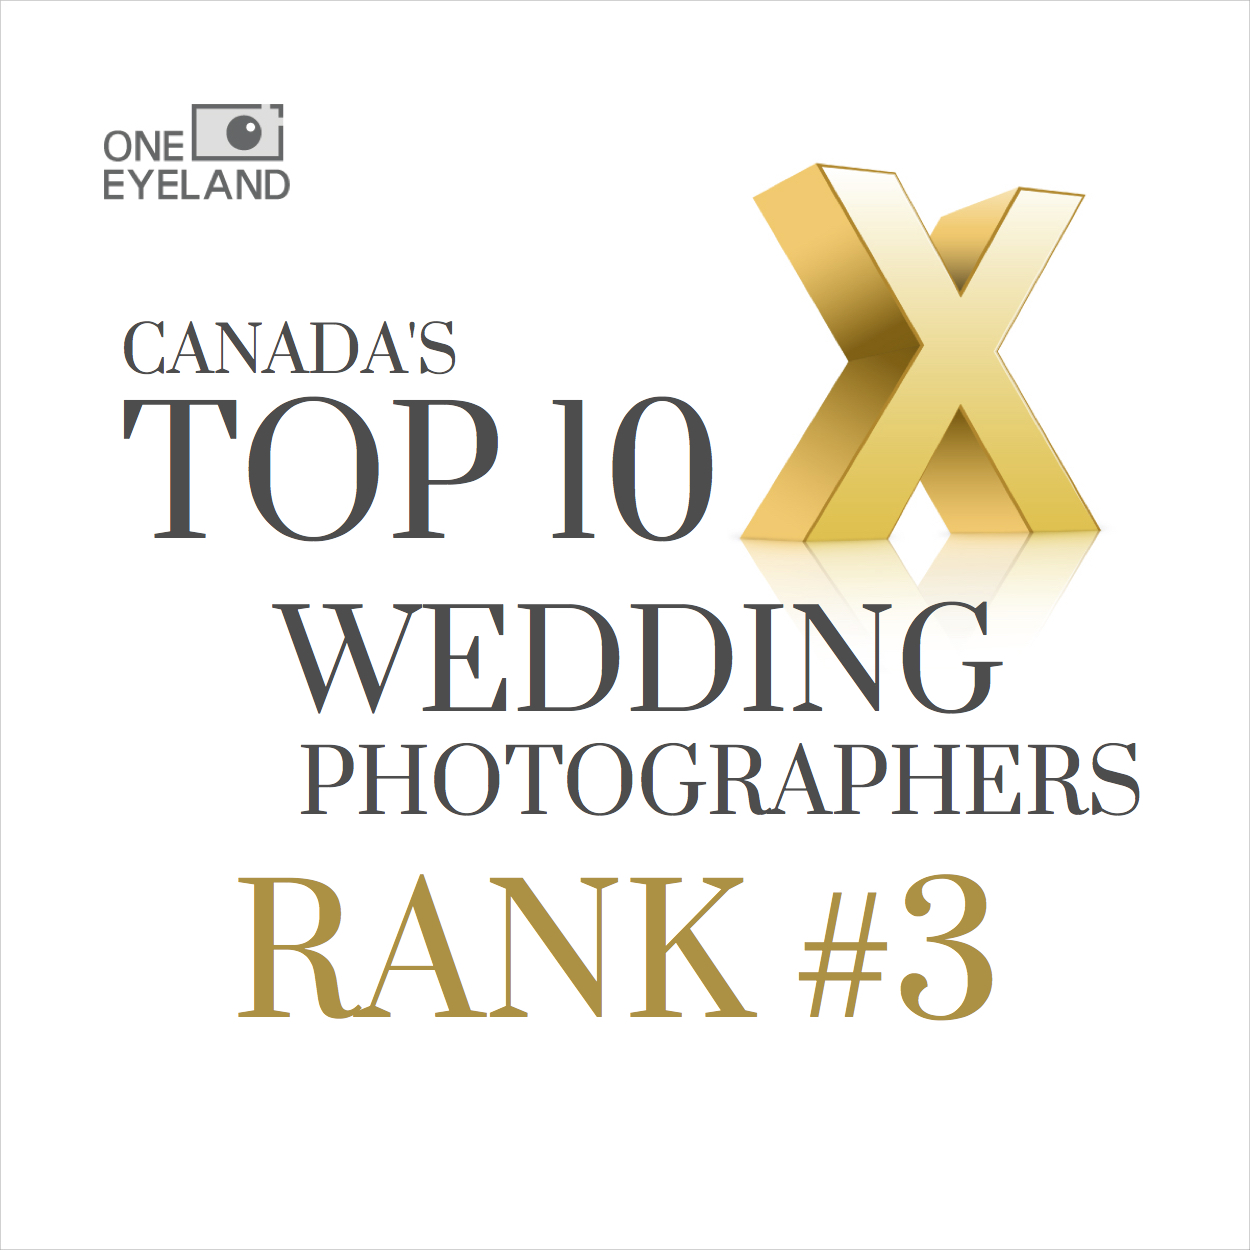 Ranked 3rd in Canada - We were ranked 3rd best wedding photographer in Canada at the 2017 One Eyeland awards.